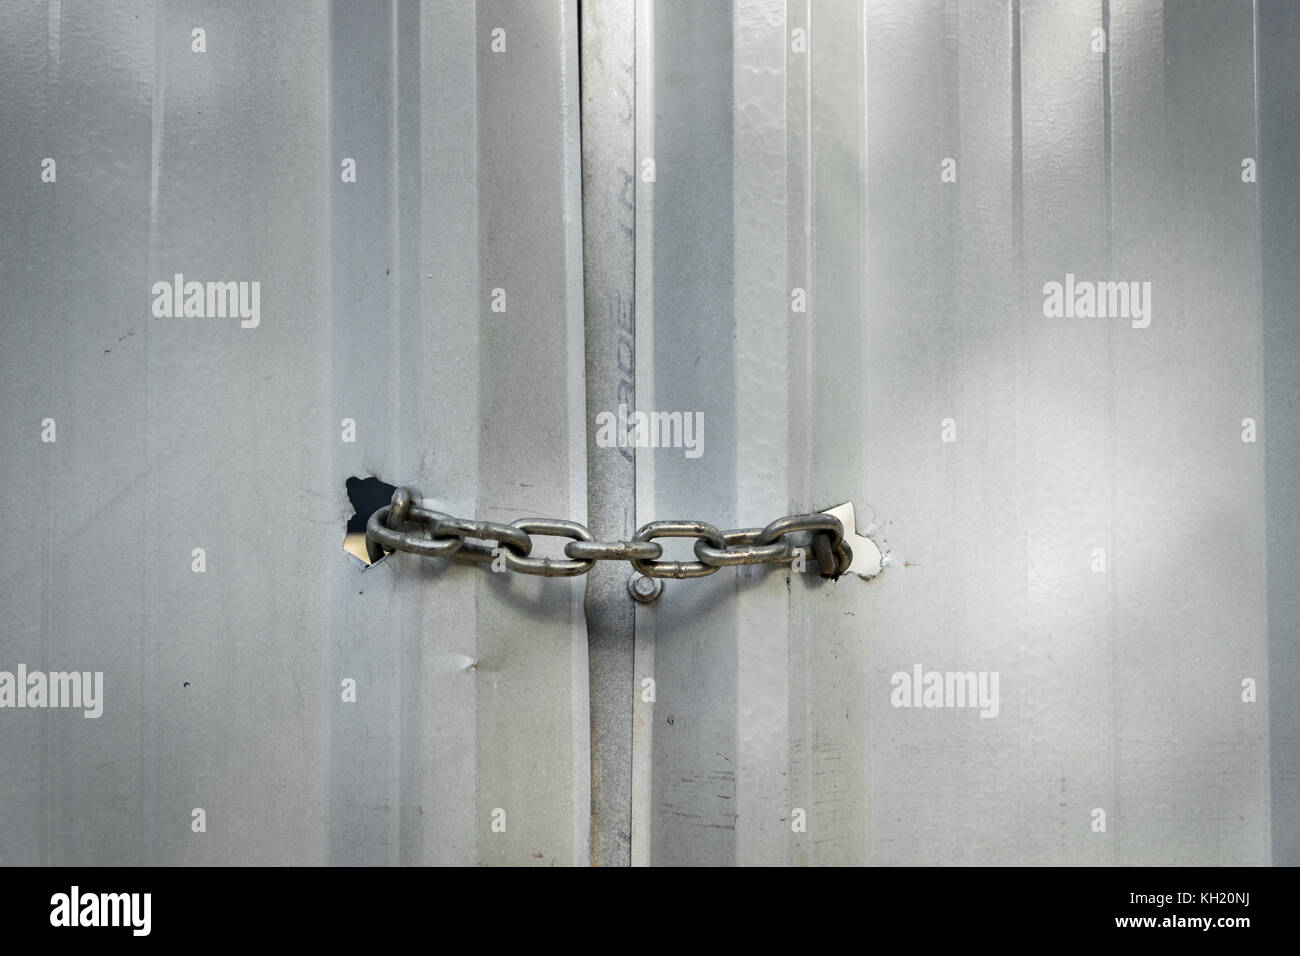 Metal chain securely locking door in an industrial setting - Stock Image